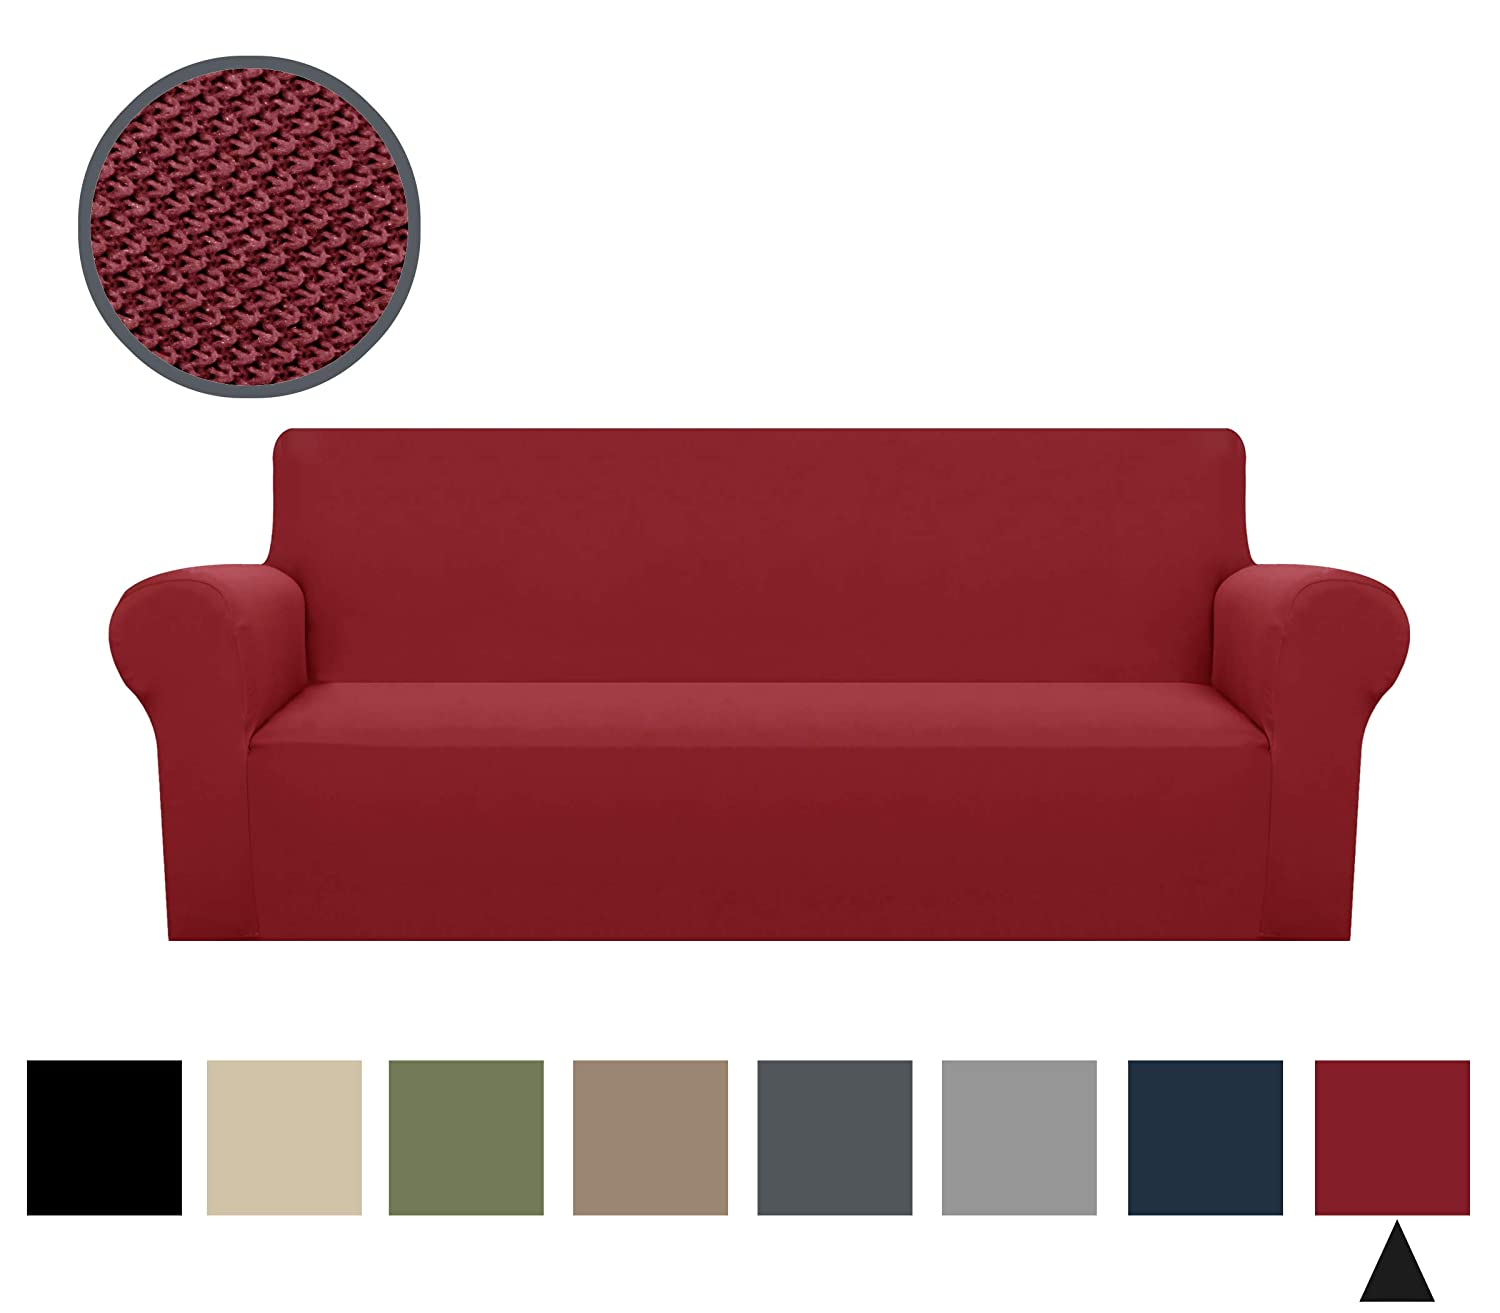 Binztec 1-Pieces Sofa Cover Sofa Slipcover Stay in Place Super Rich Furniture Cover/Protector, Skid Resistance (Burgundy, Sofa)